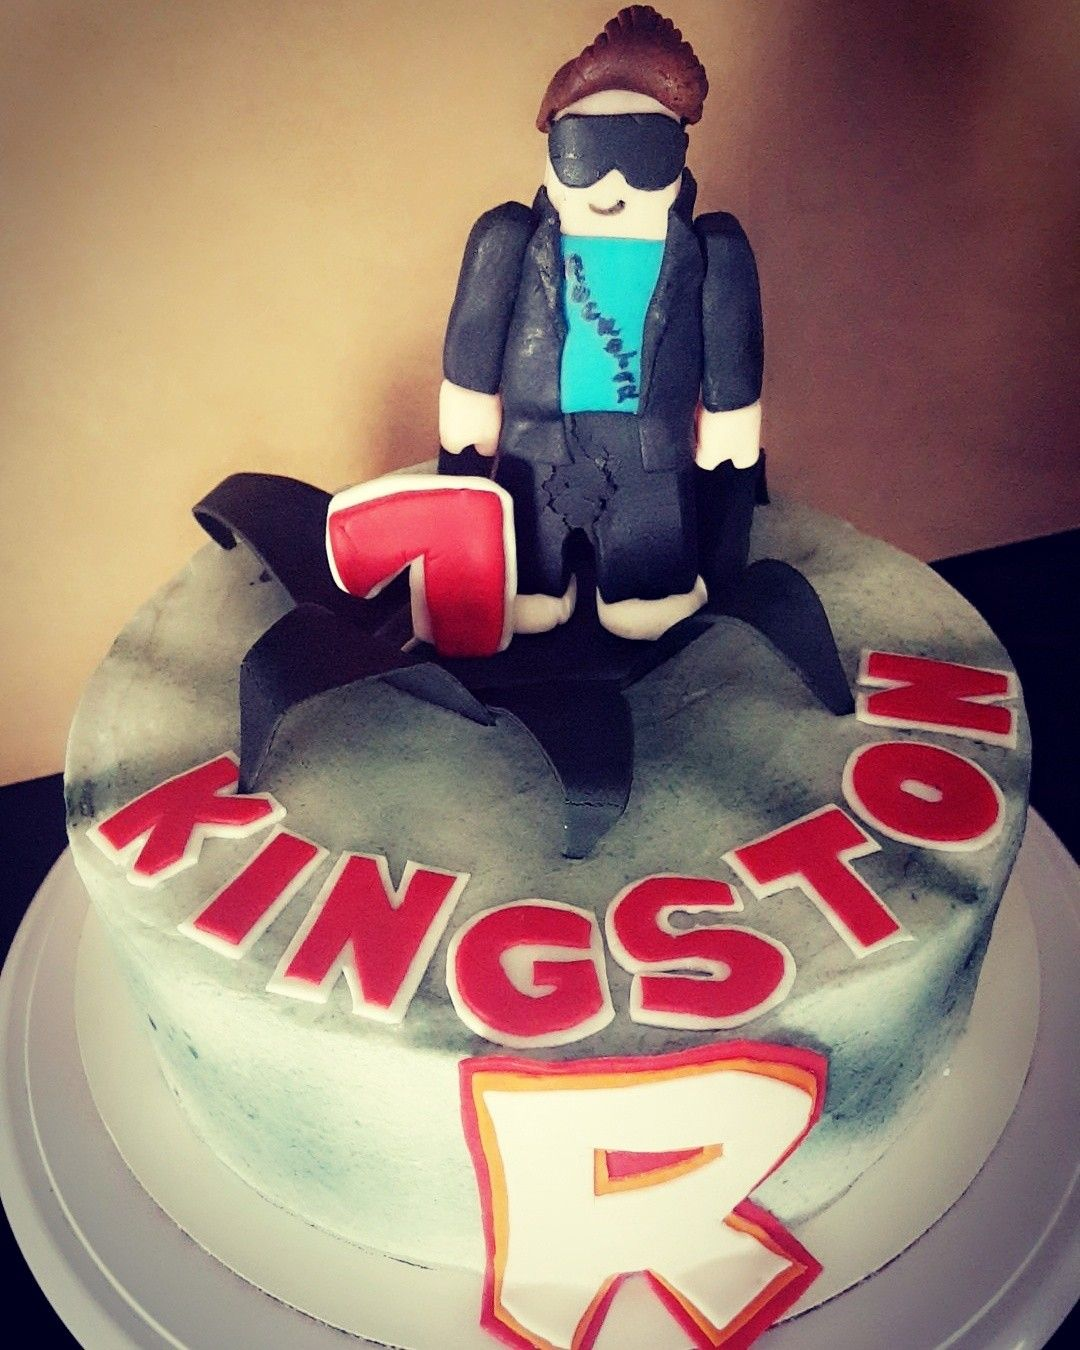 Roblox Inspired Cake With A Personal Avatar Character Birthday 91717 Custom Madebynina